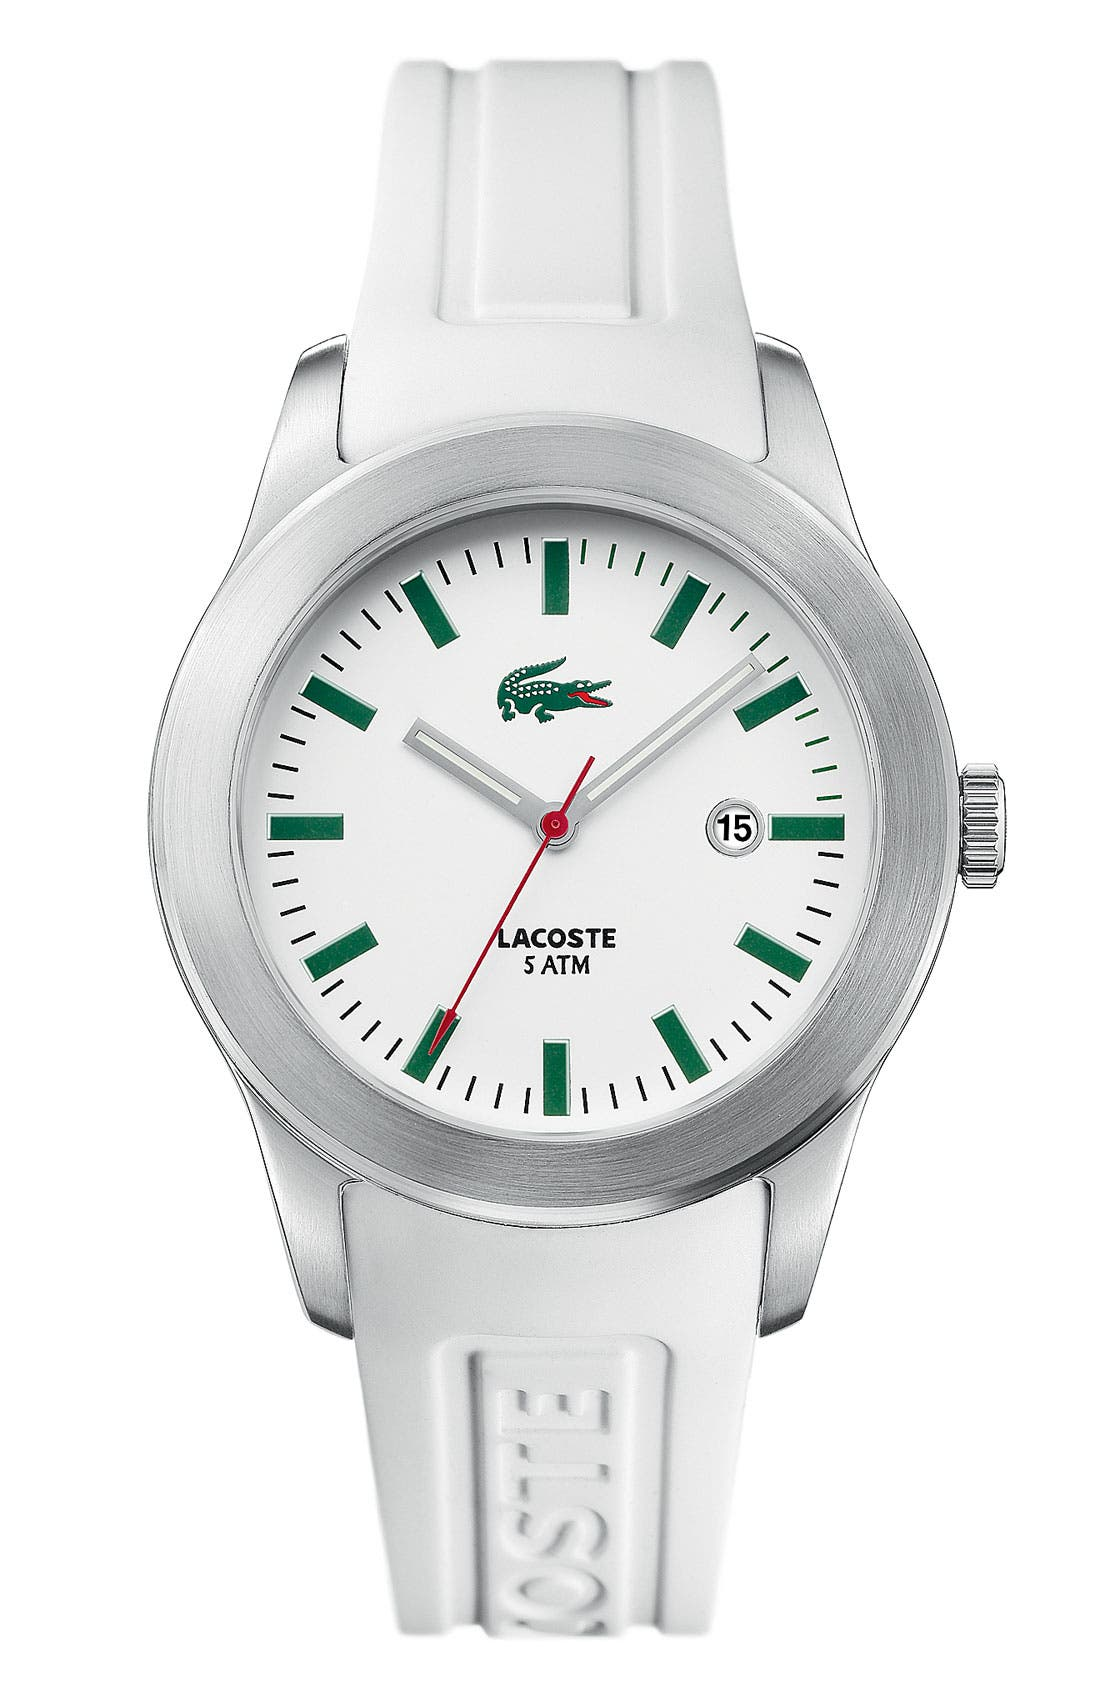 Main Image - Lacoste 'Advantage' Men's Round Watch, 42mm